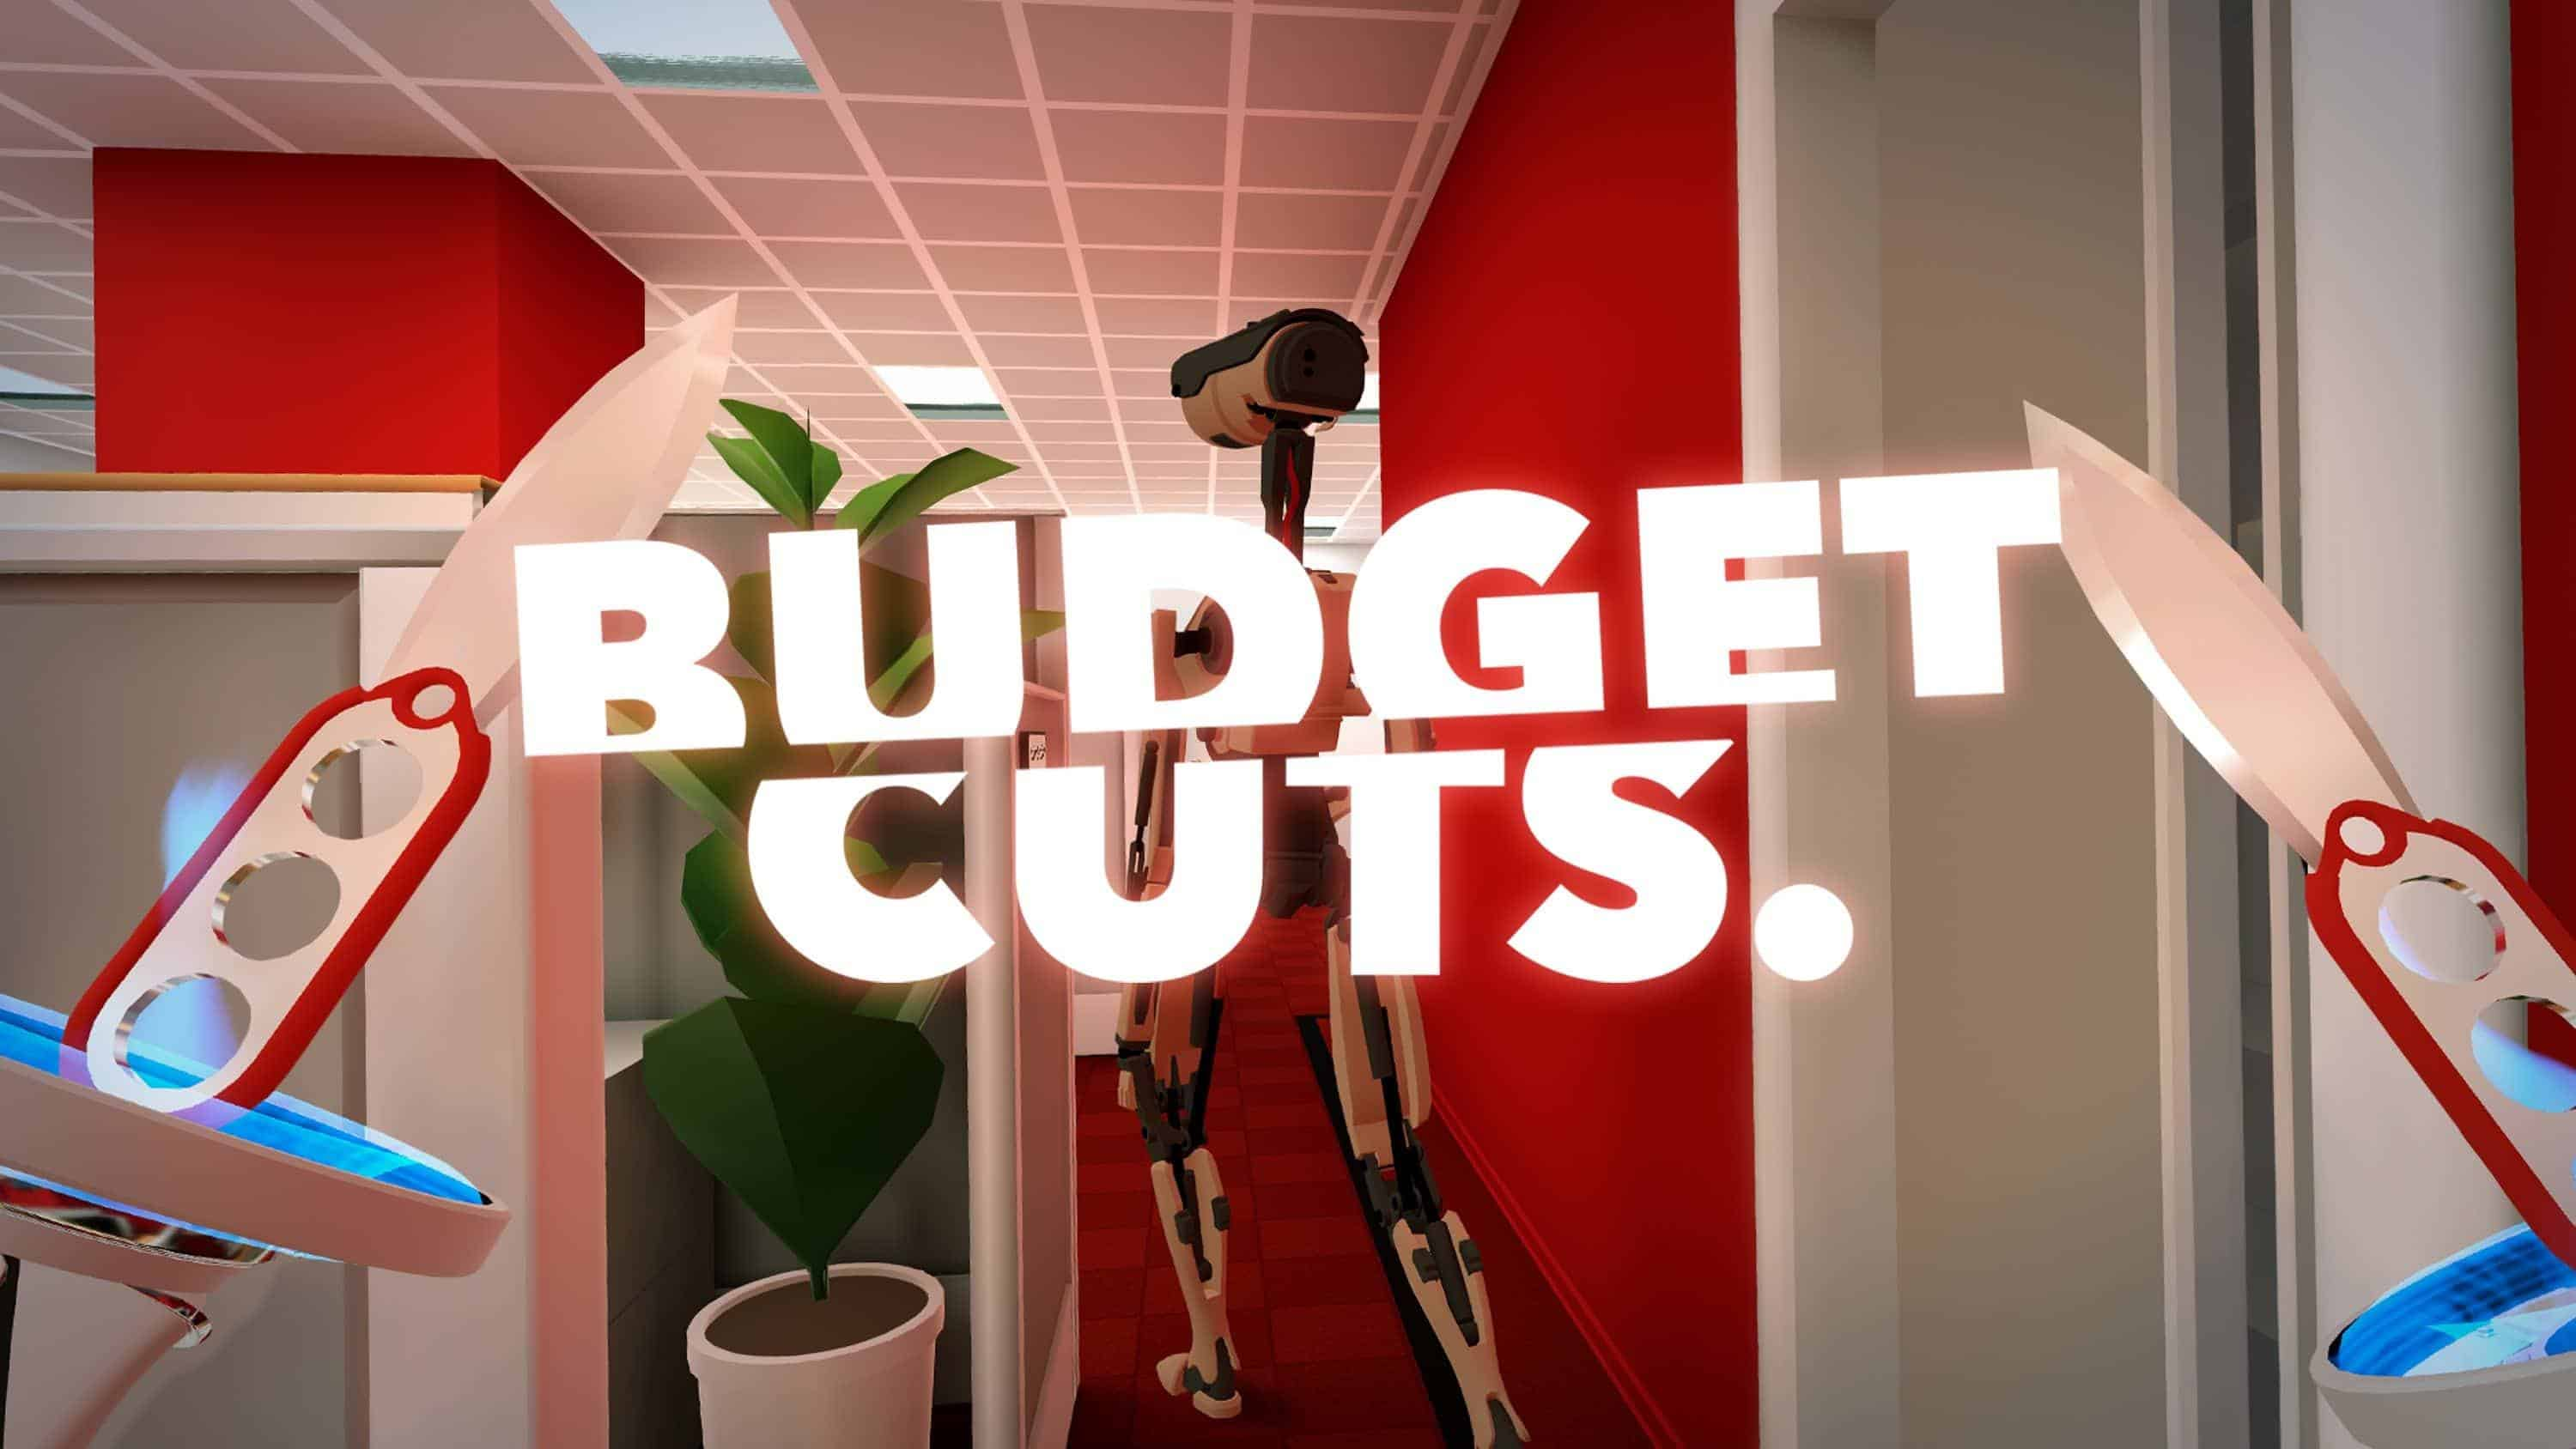 Budget Cuts recension förhandstitt